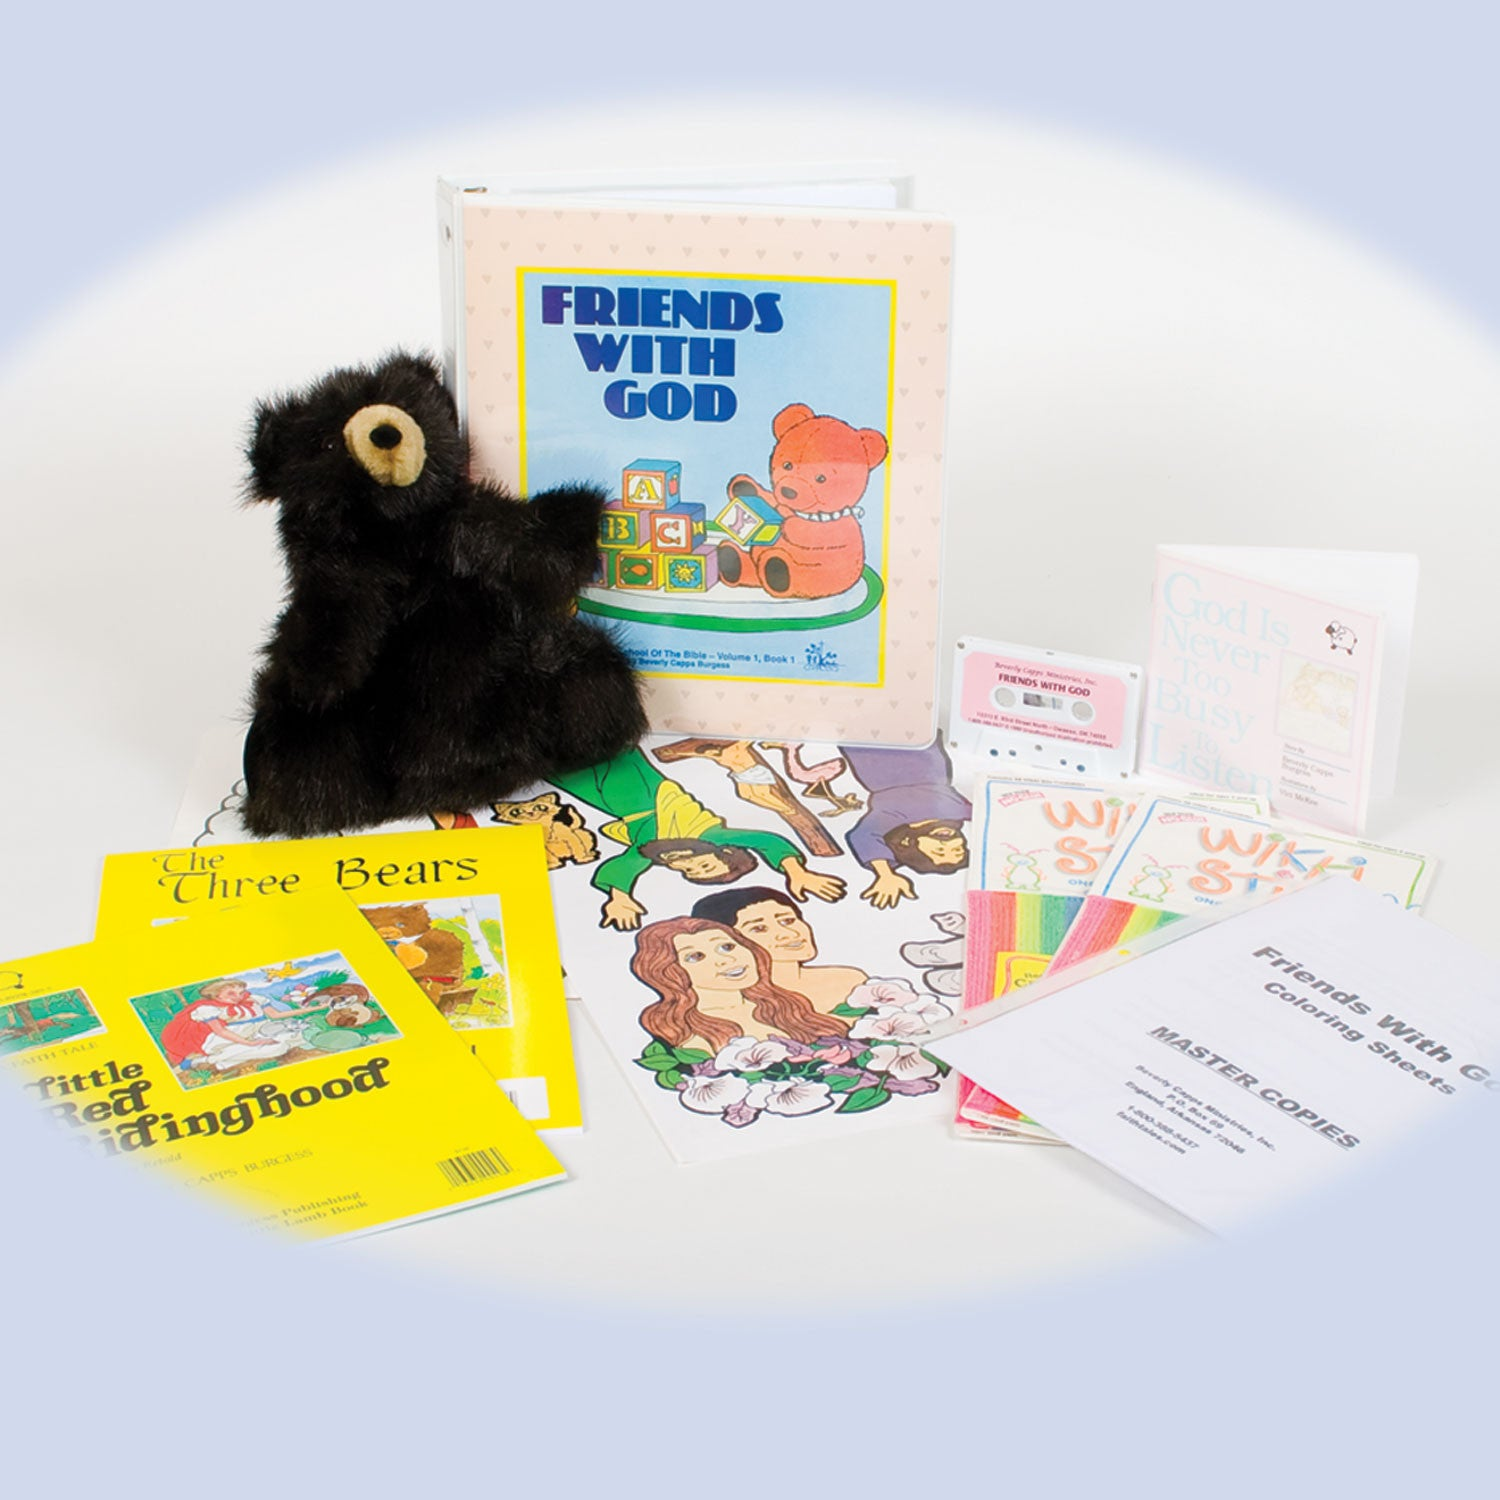 Friends with God with Gladly Bear - Sunday School/Homeschool Curriculum for  Preschoolers Ages 2 - 5